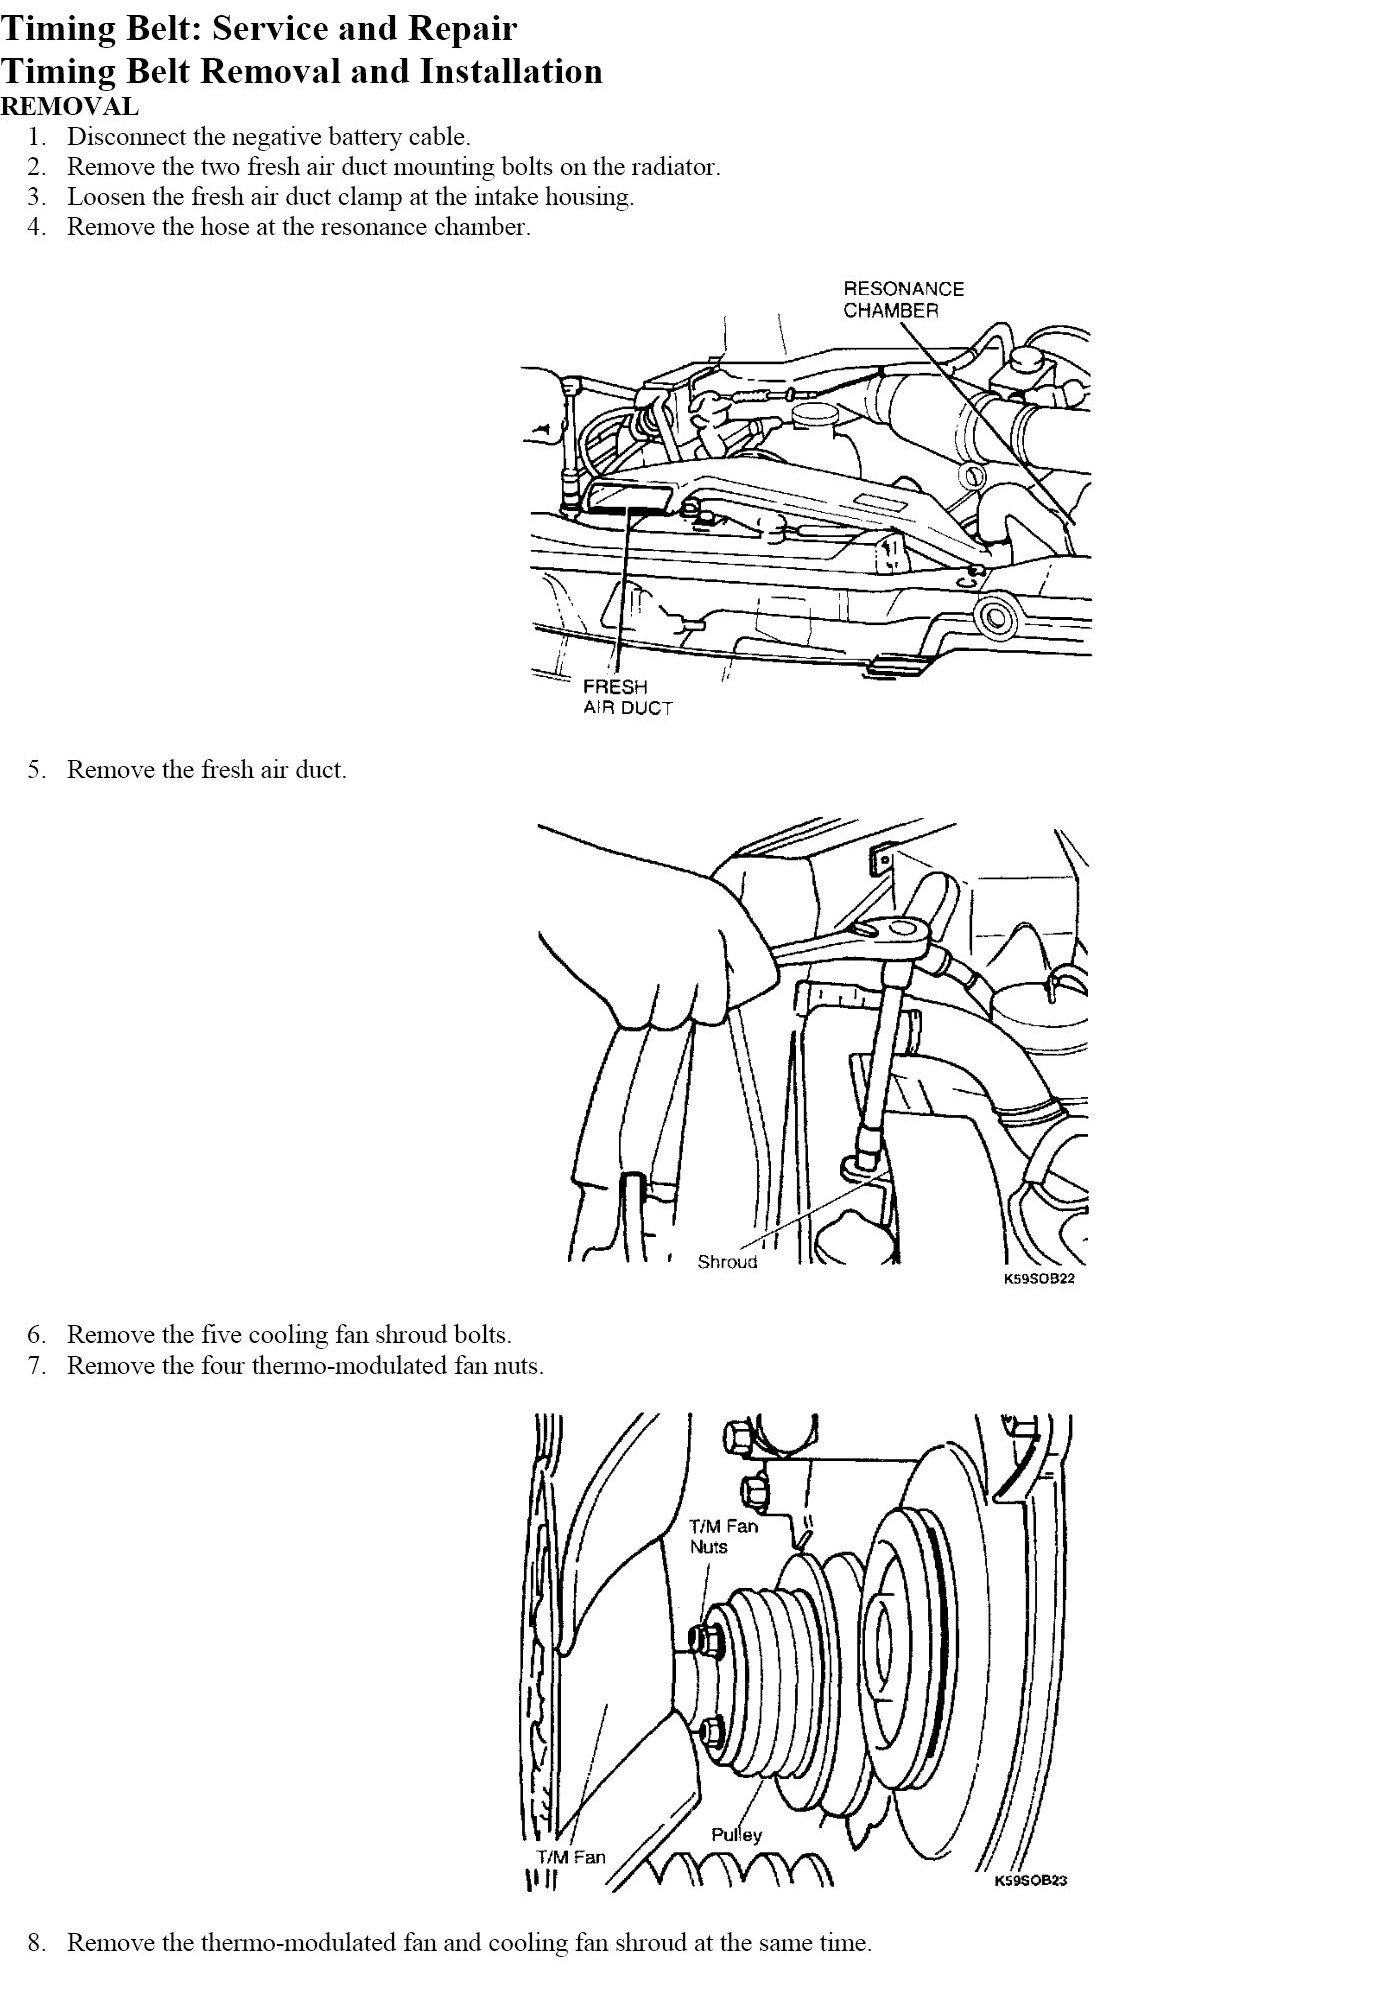 How To Time A 2000 Kia Sportage 1999 Timing Belt Graphic